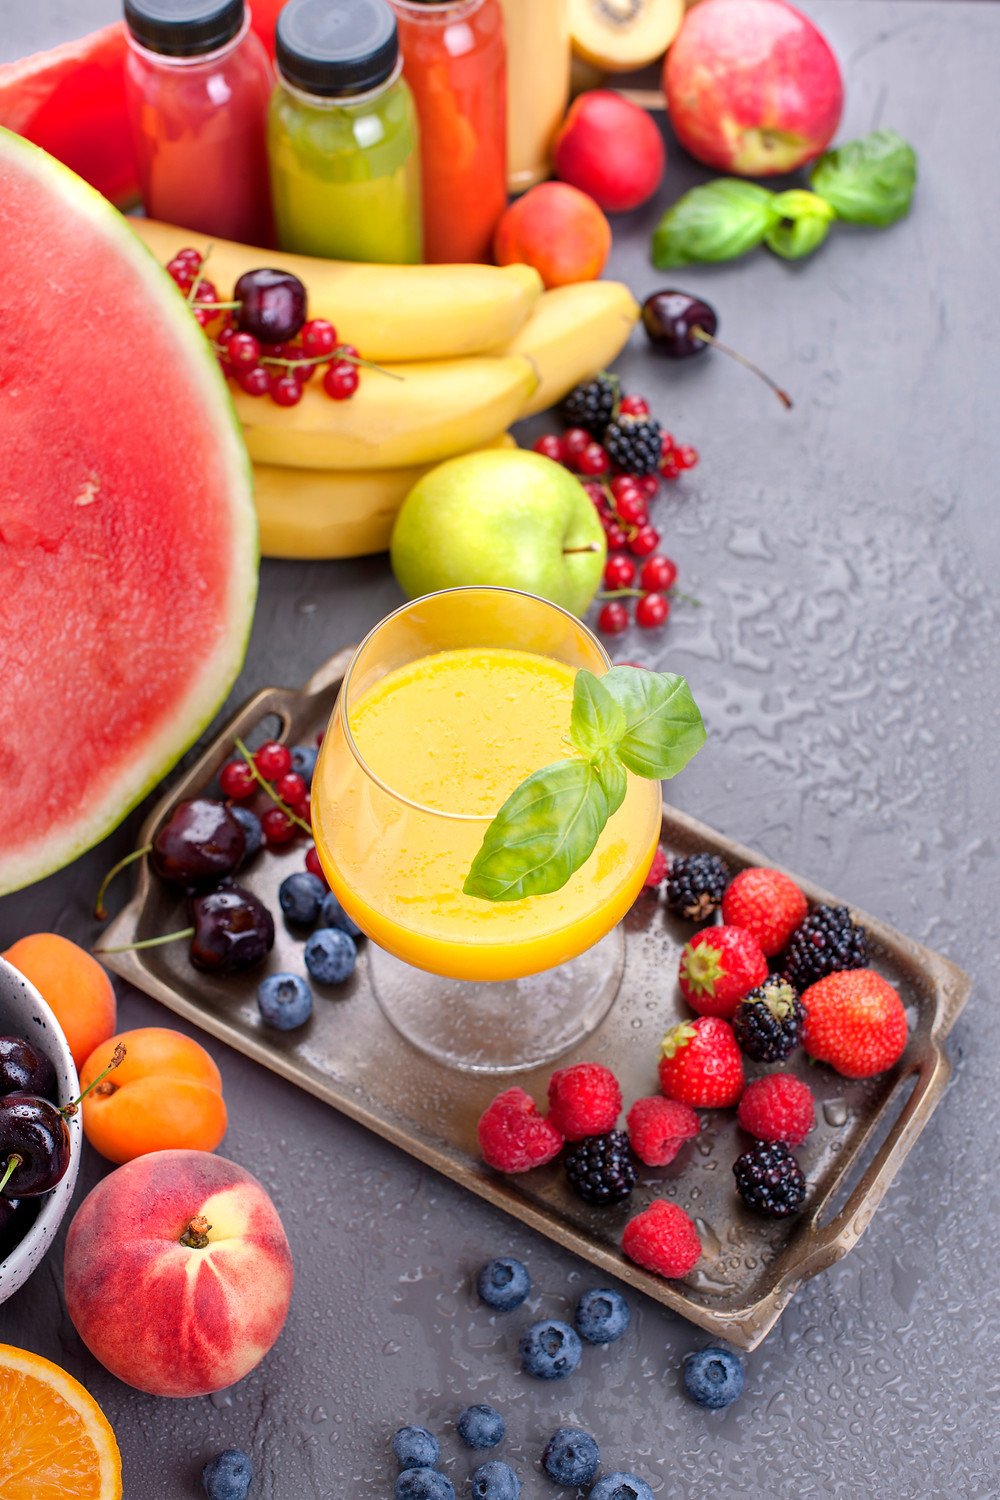 Healthy fruits on your health journey